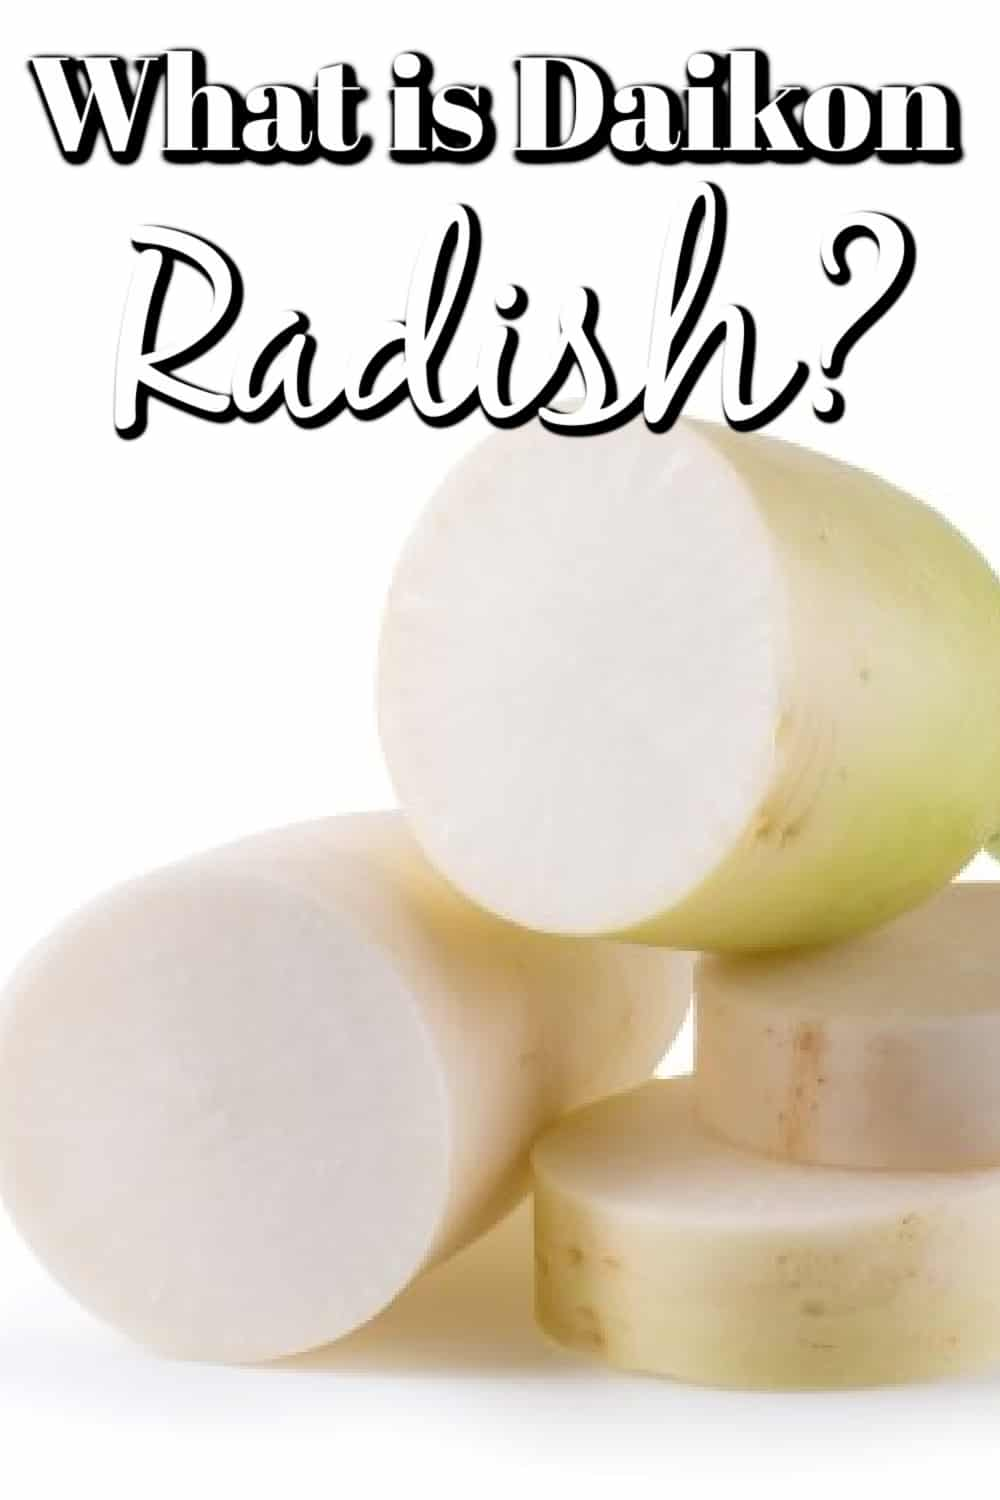 Daikon radishes isolated over a white background. made into a pin